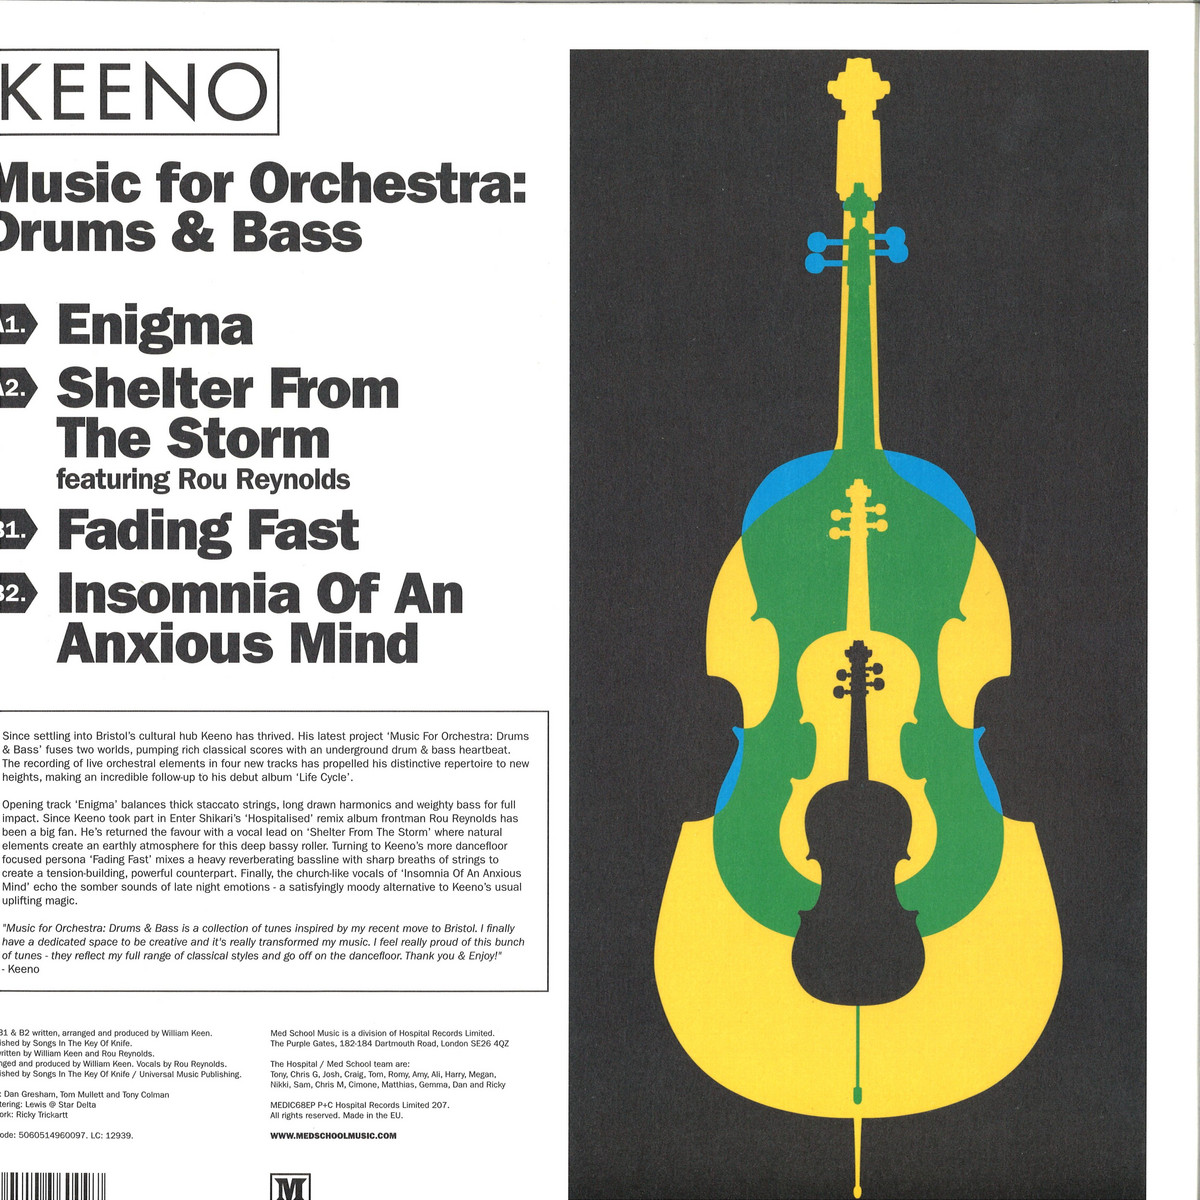 Keeno - Music For Orchestra: Drum & Bass / Med School